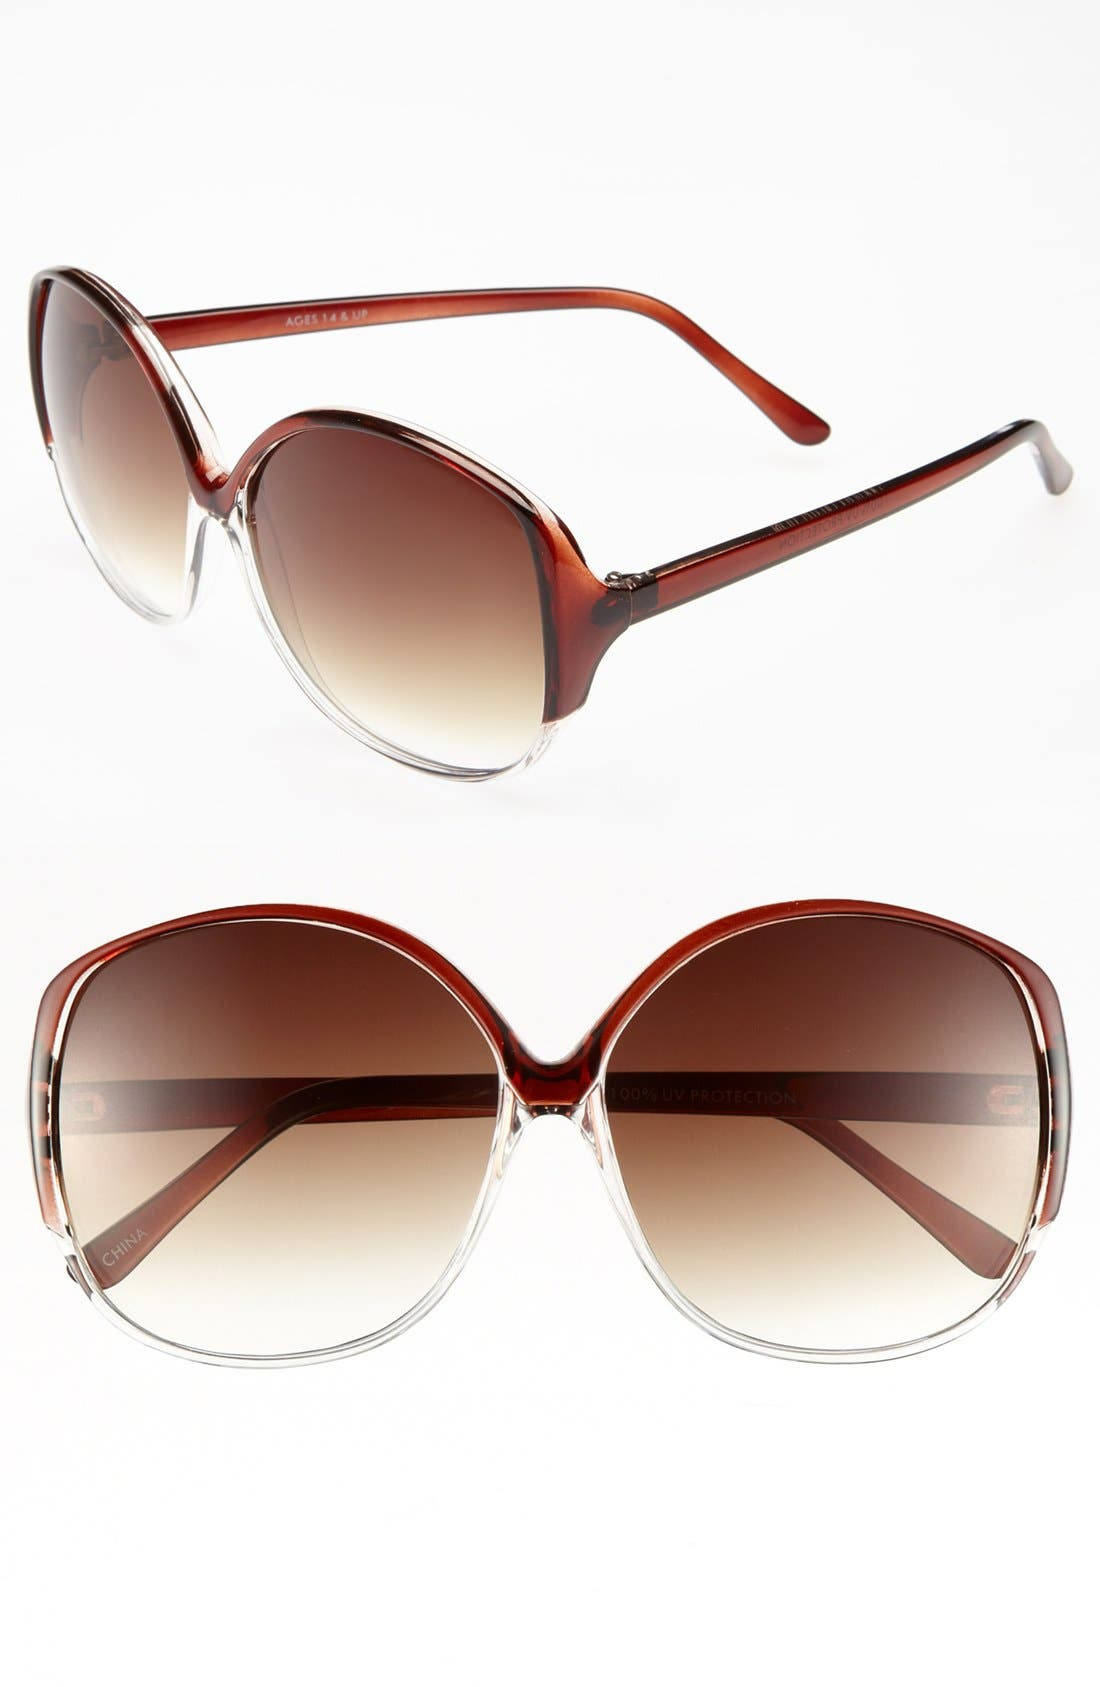 Alternate Image 1 Selected - FE NY 'Tampani' Sunglasses